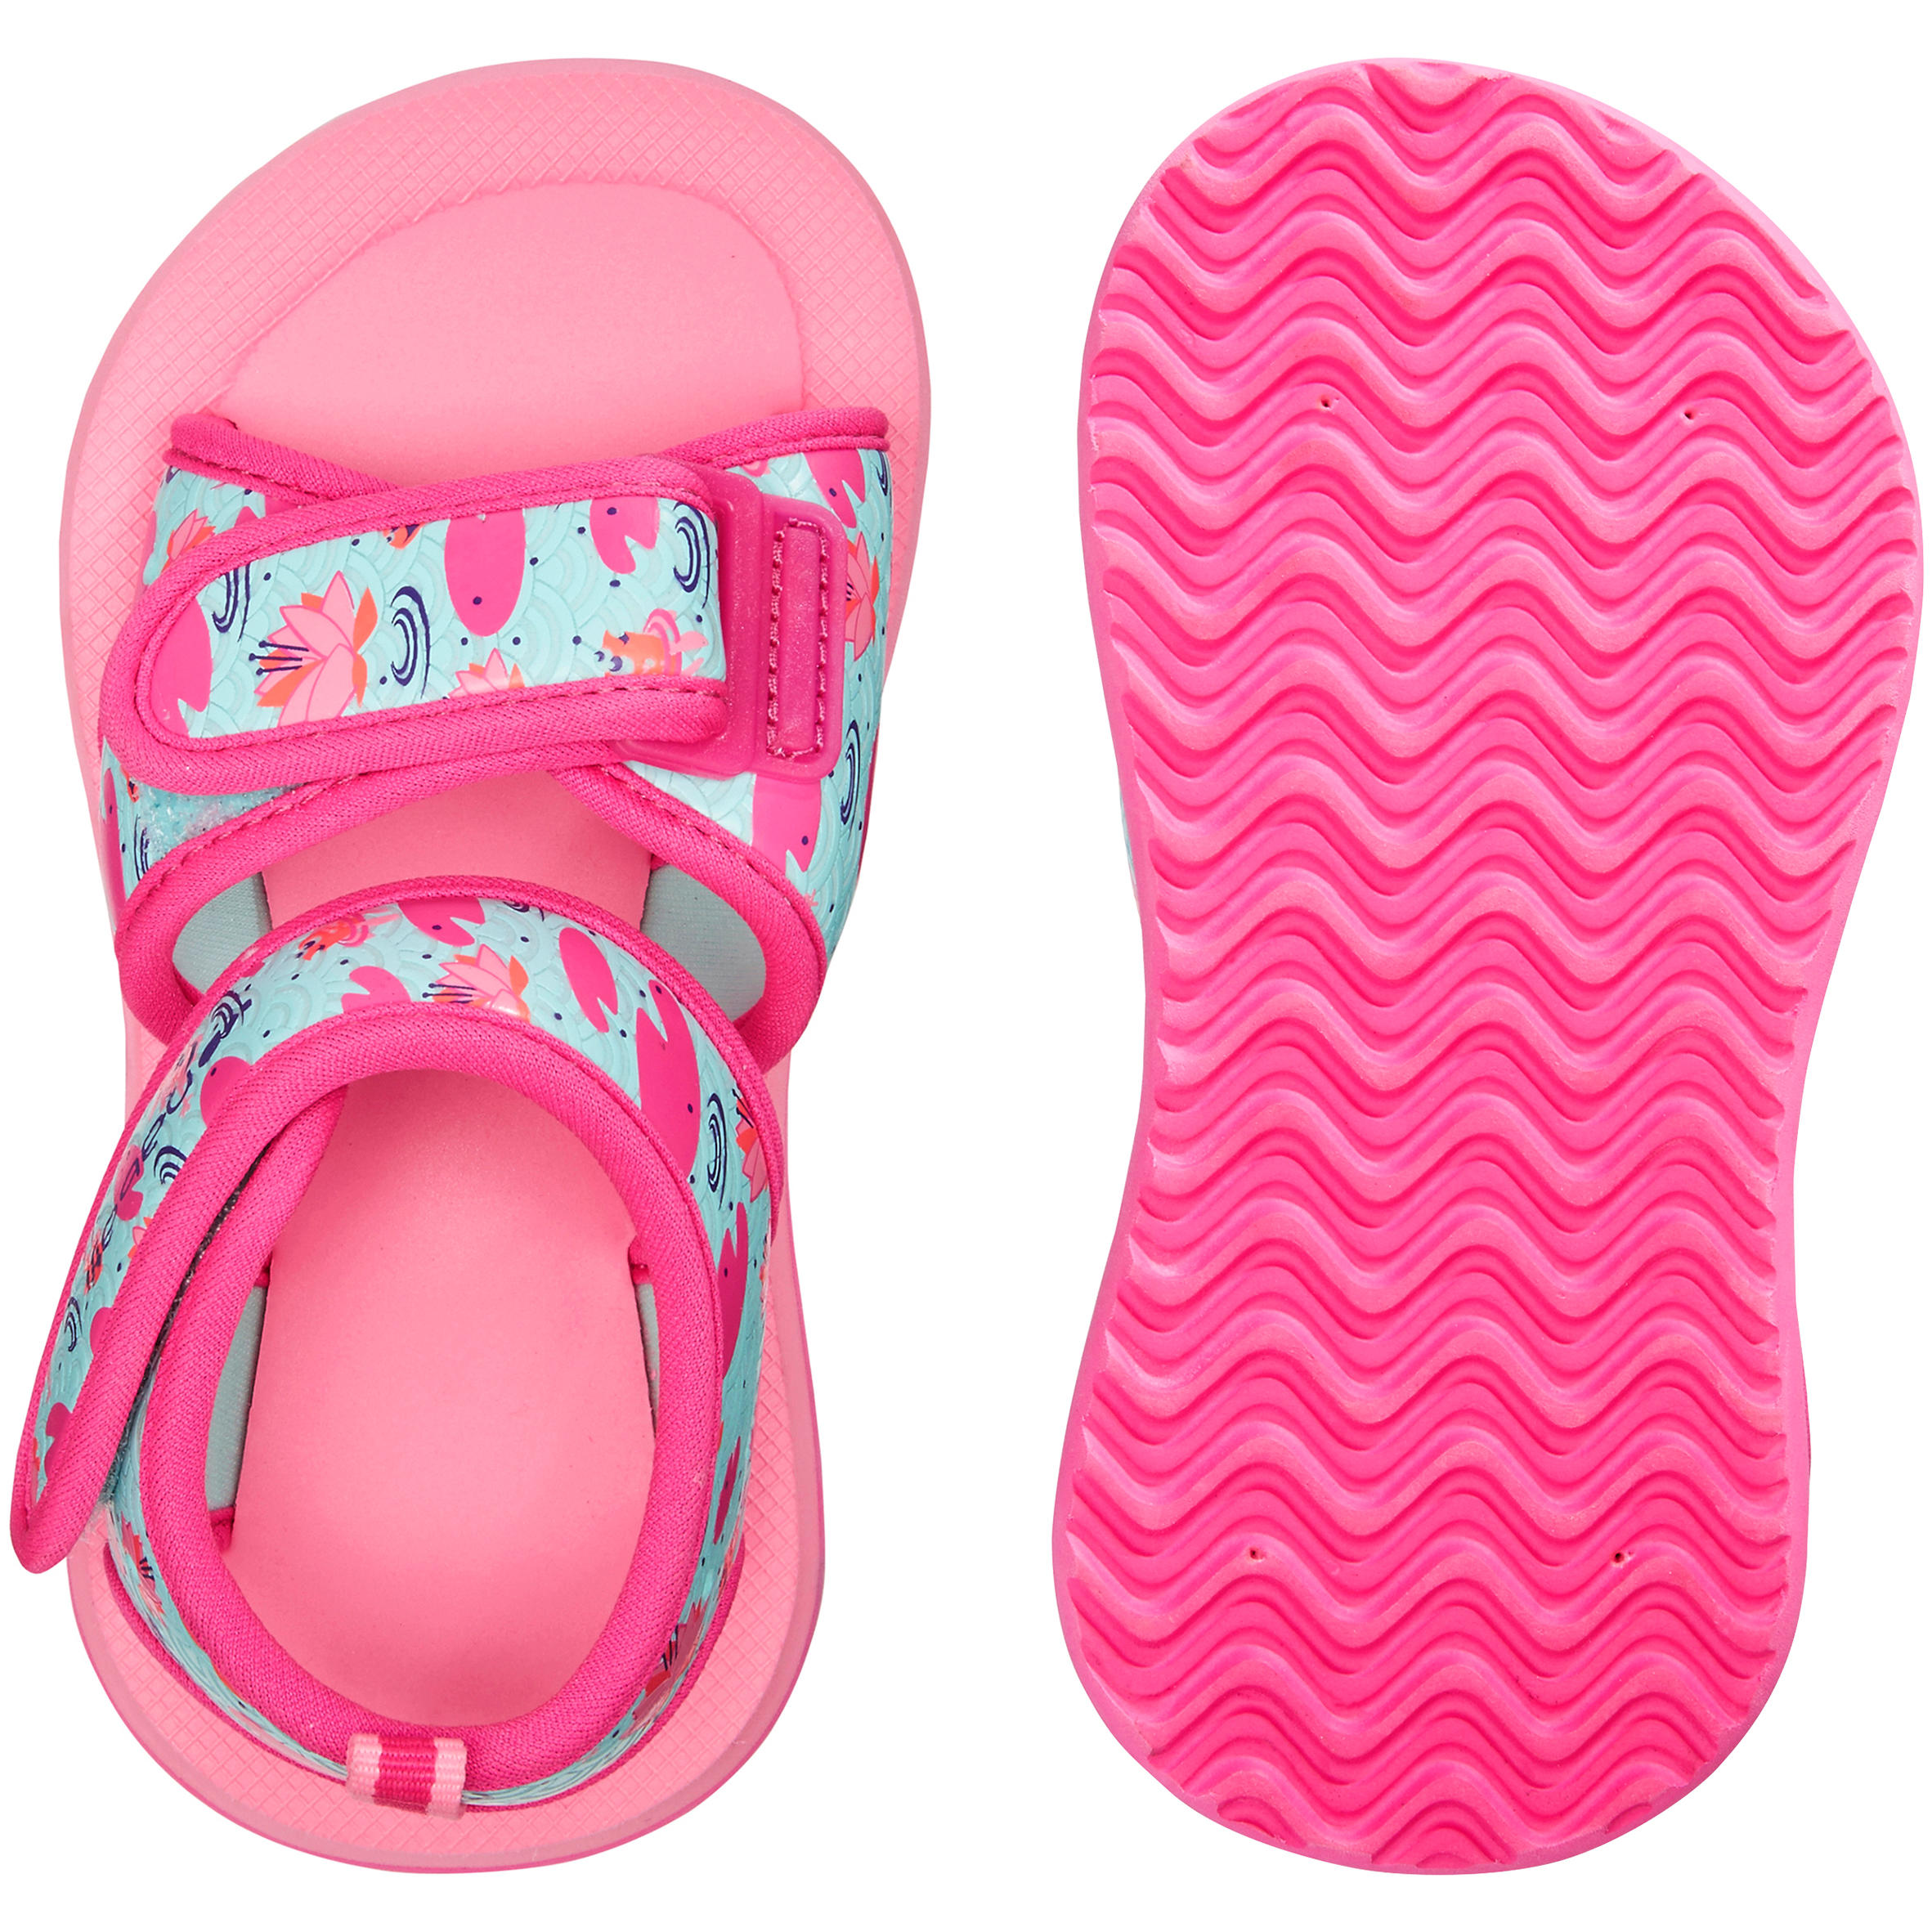 BABY'S PICOLA SSP 100 POOL SANDALS FLAMINGO PINK